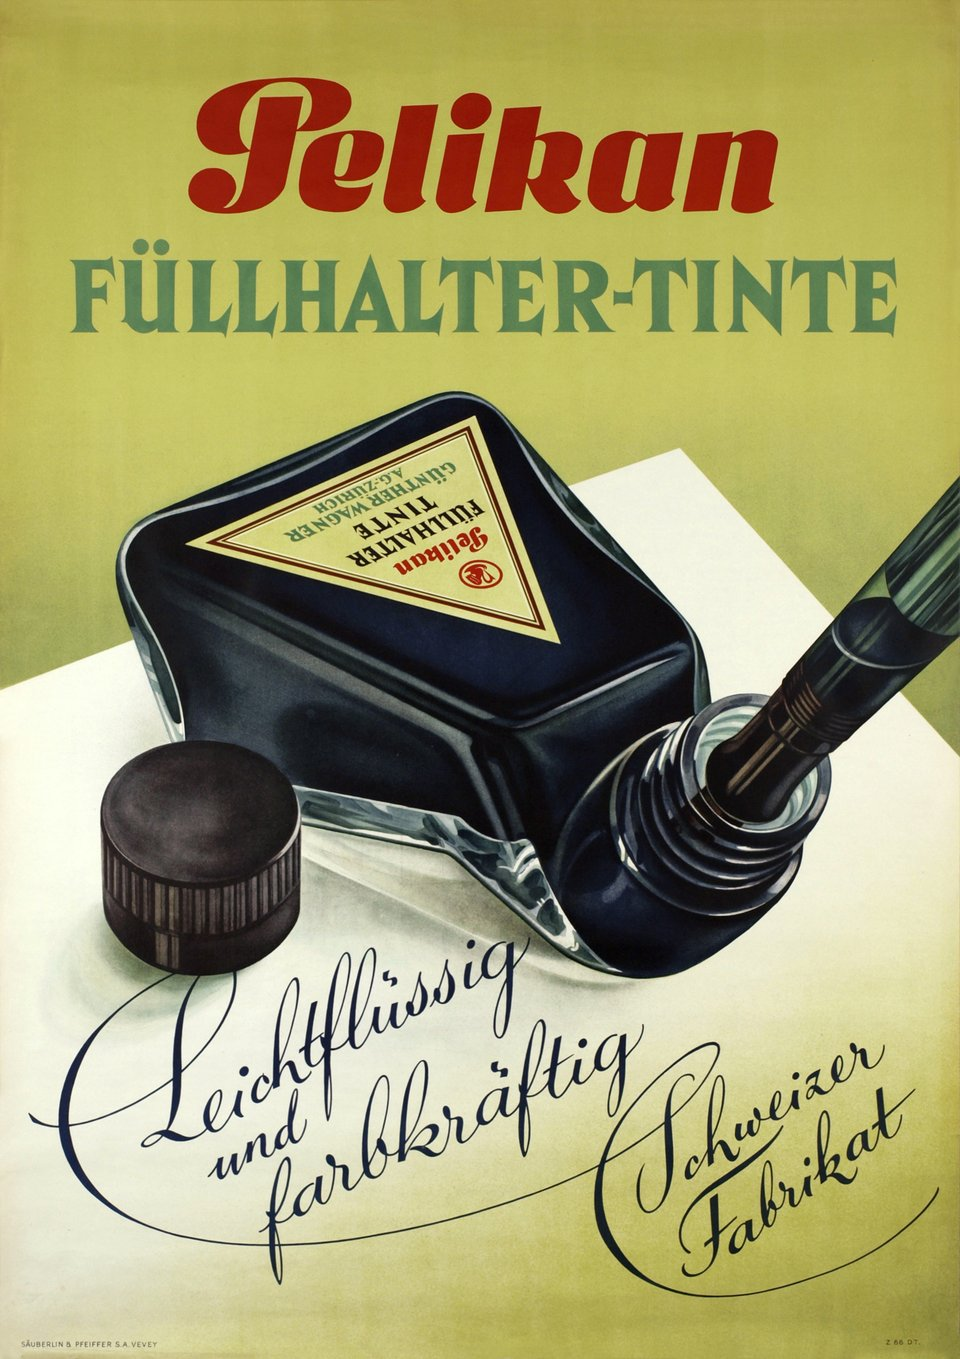 Pelikan Füllhalter-tinte – Vintage poster – ANONYME – 1943